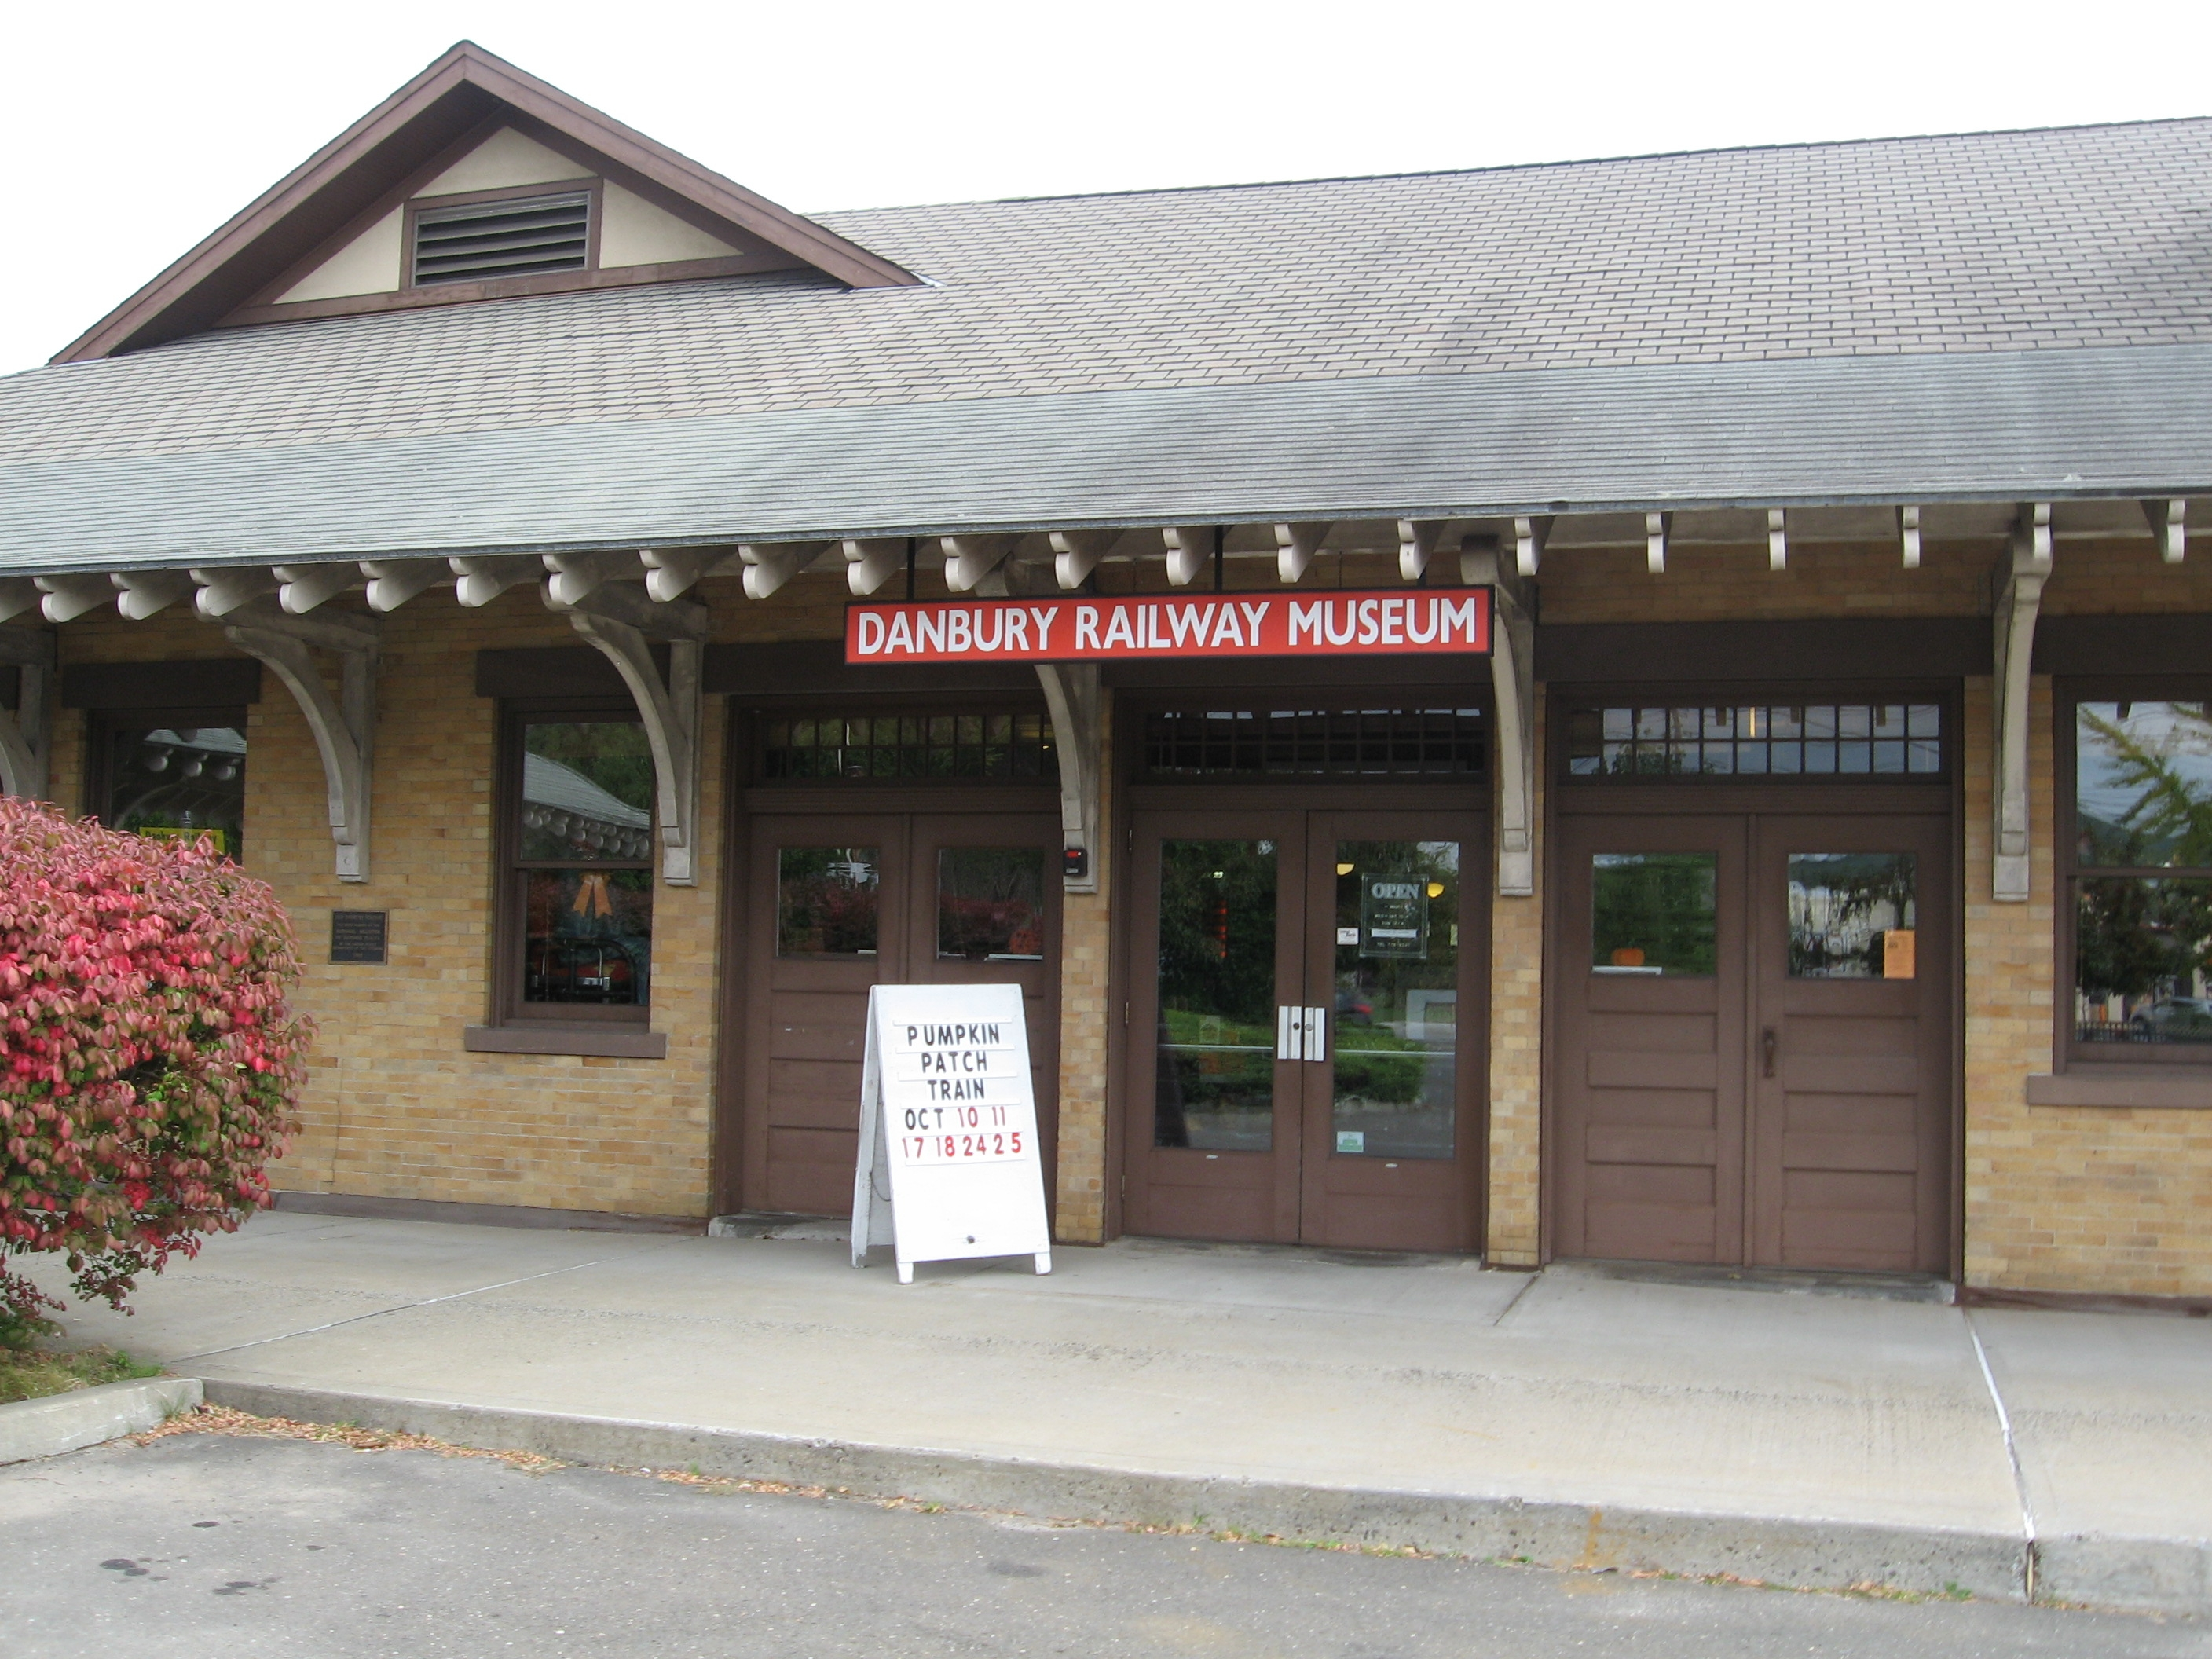 Danbury Railway Museum Entrance